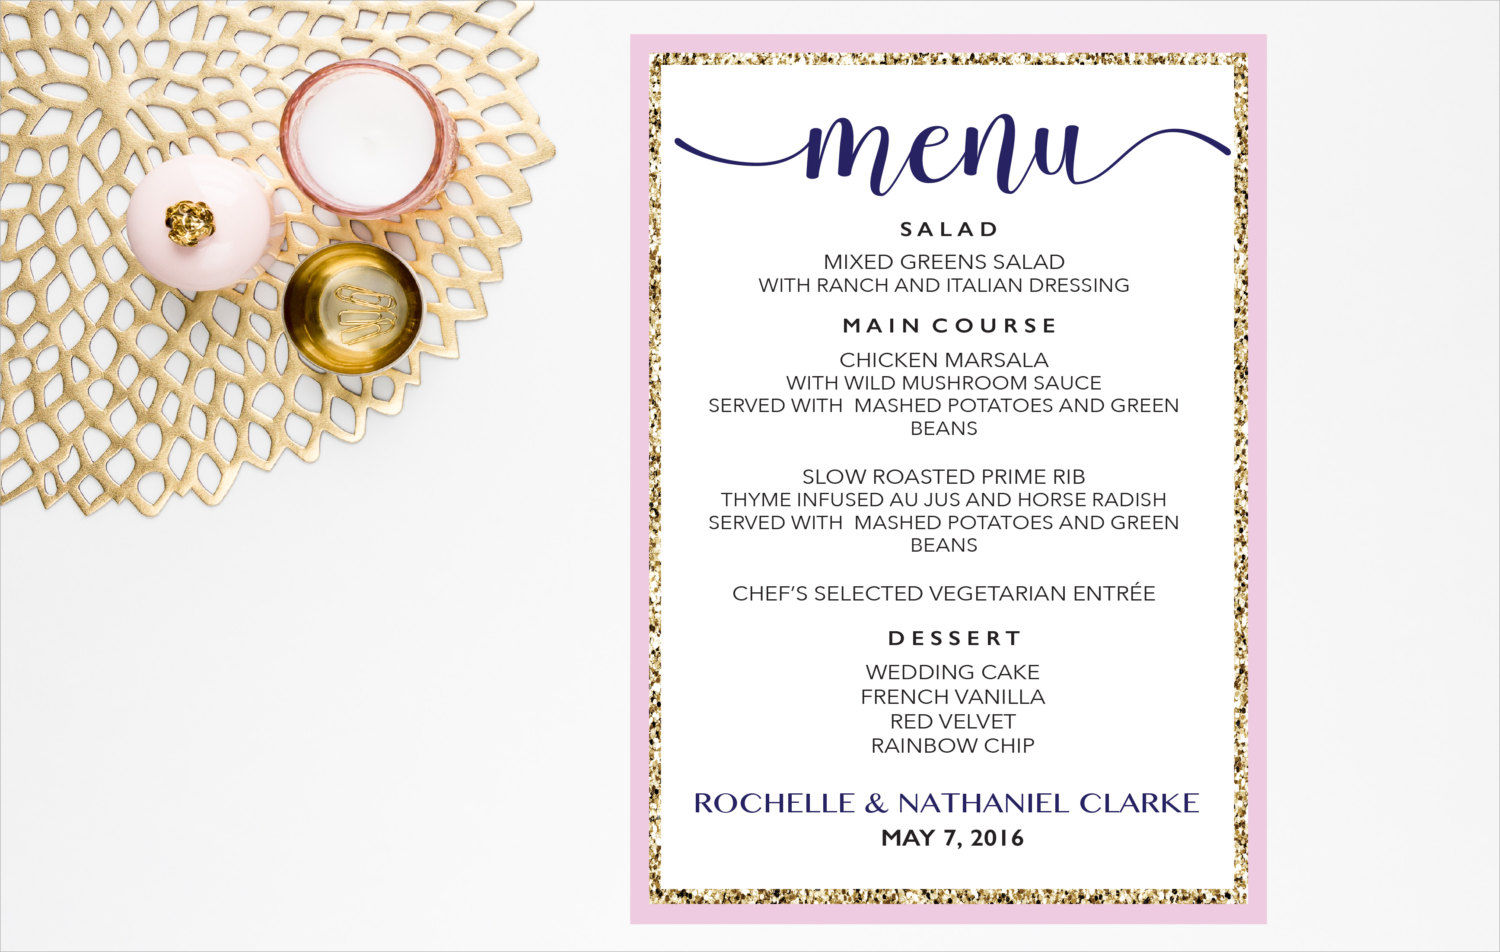 10+ Event Menu Designs | Design Trends - Premium PSD, Vector Downloads